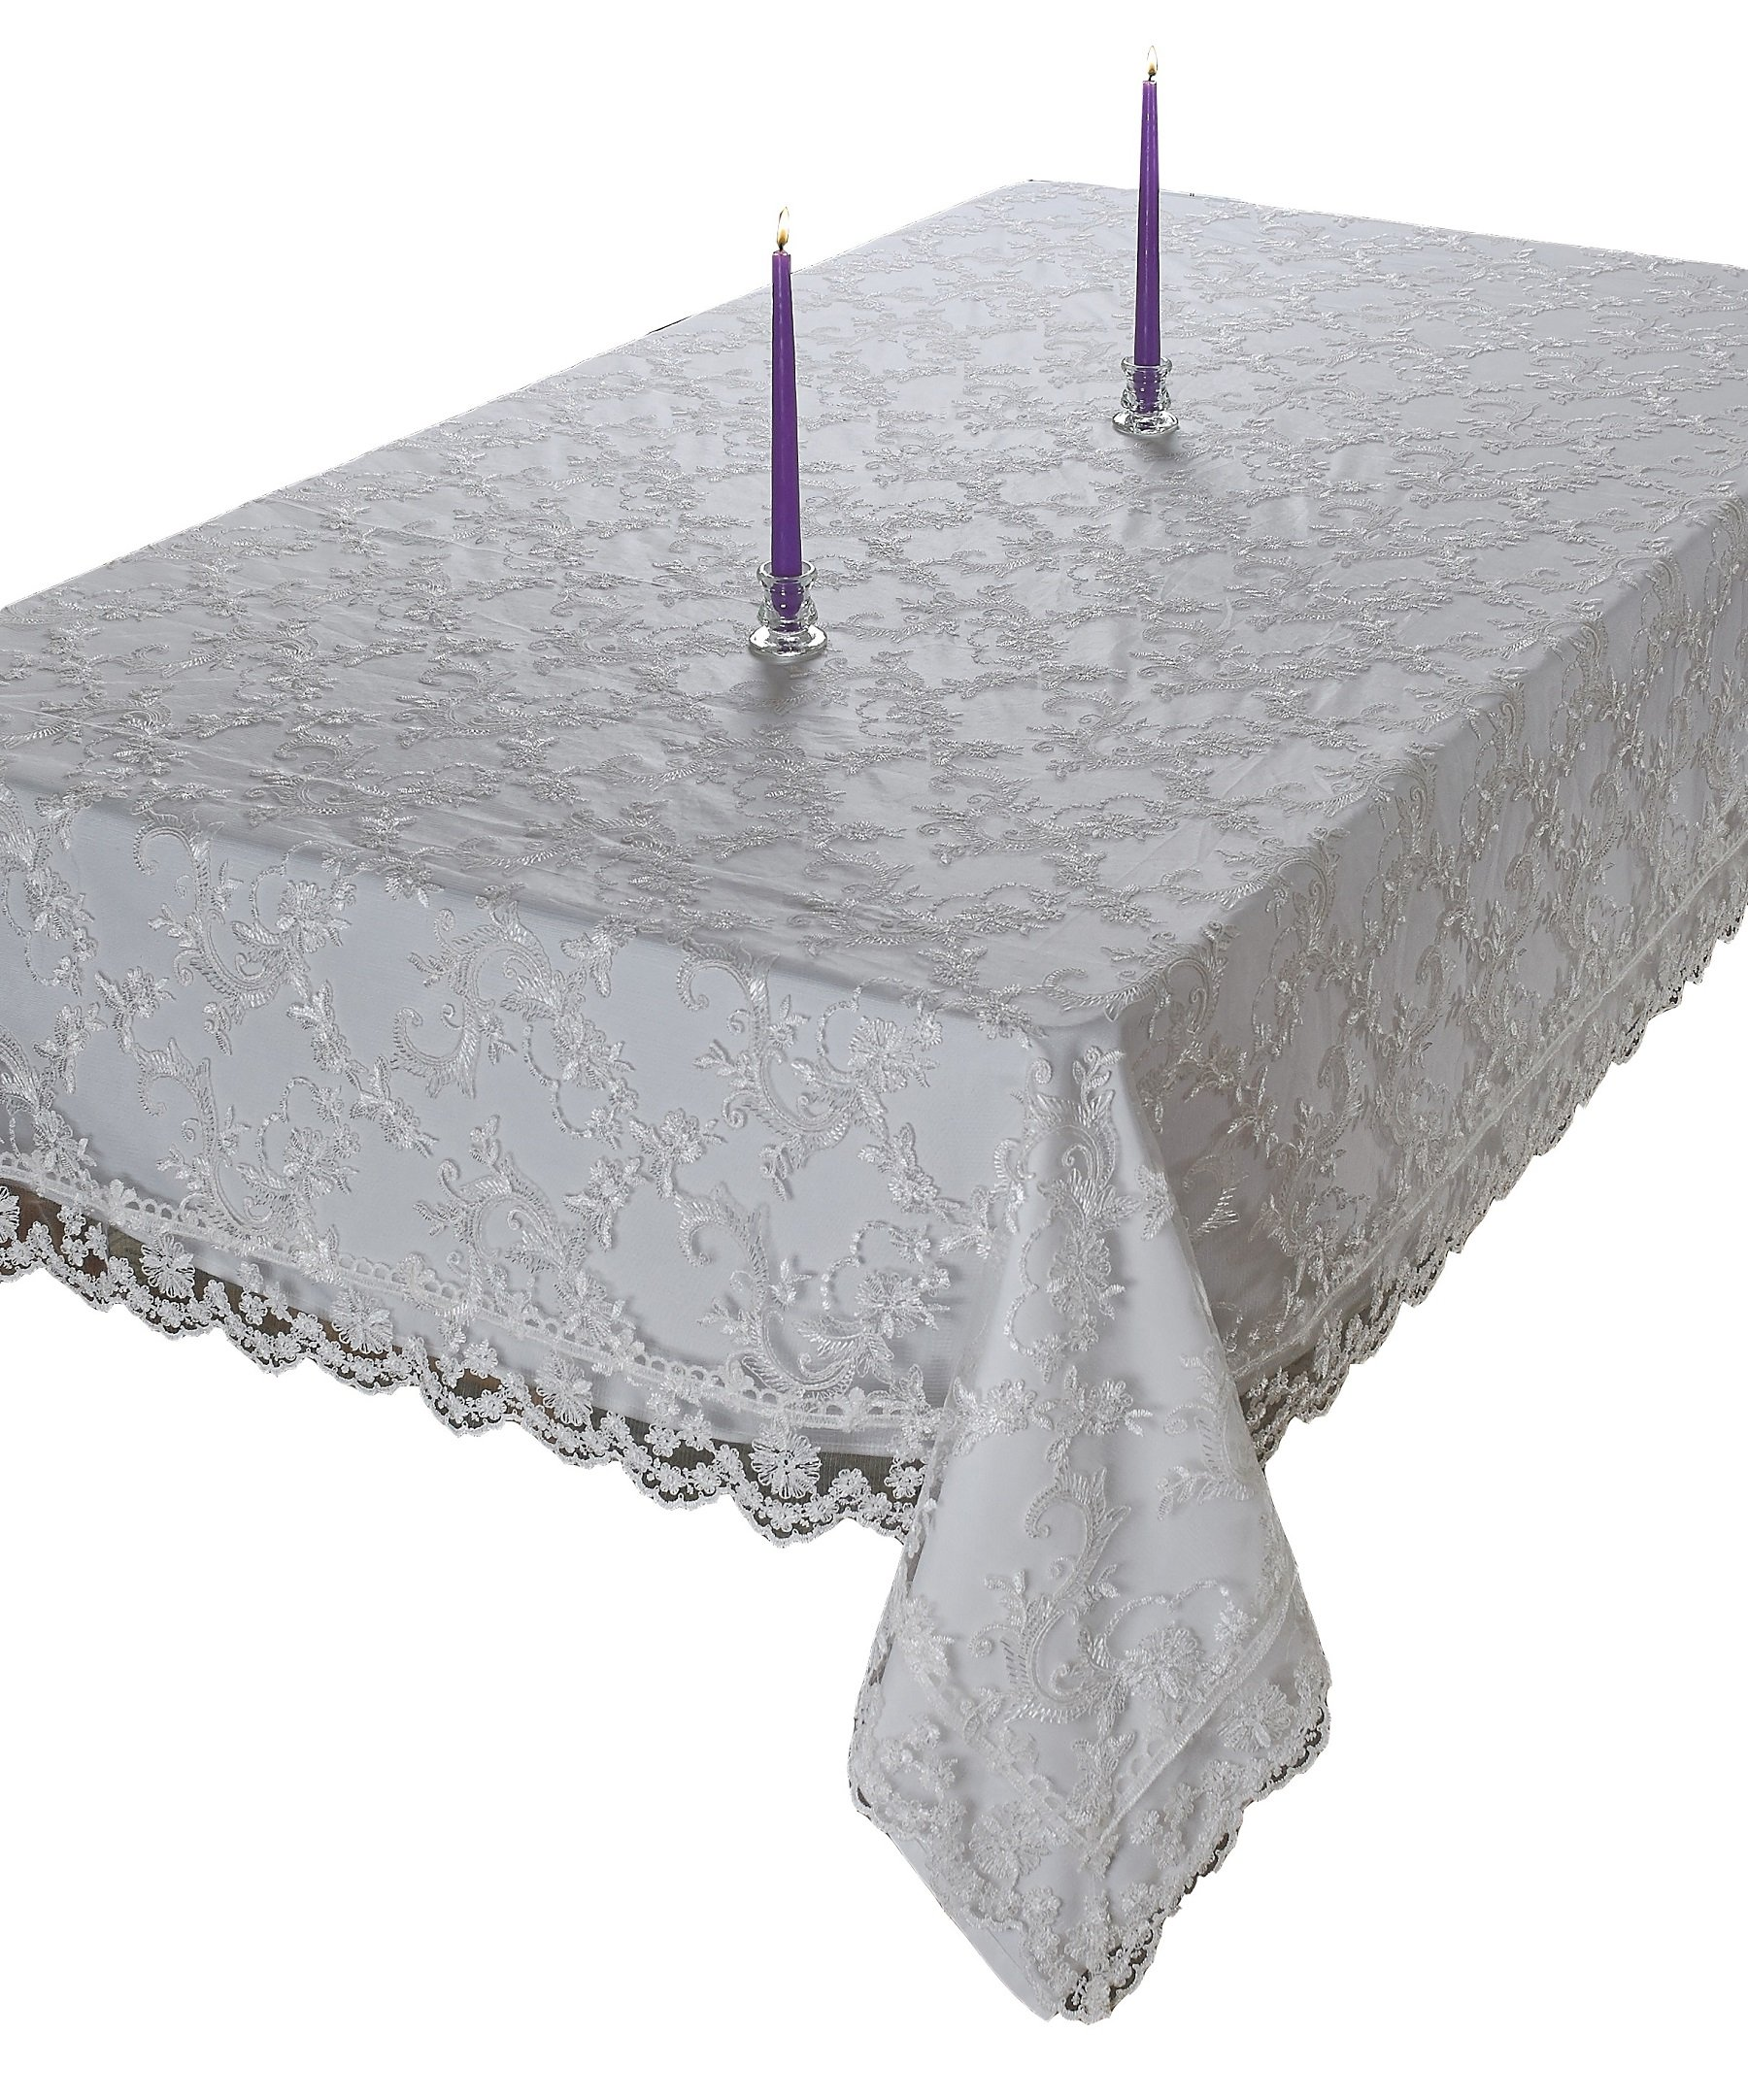 Royal-Bridal Lace With Embroidered Flowers Design Tablecloths White 70'' X 132''